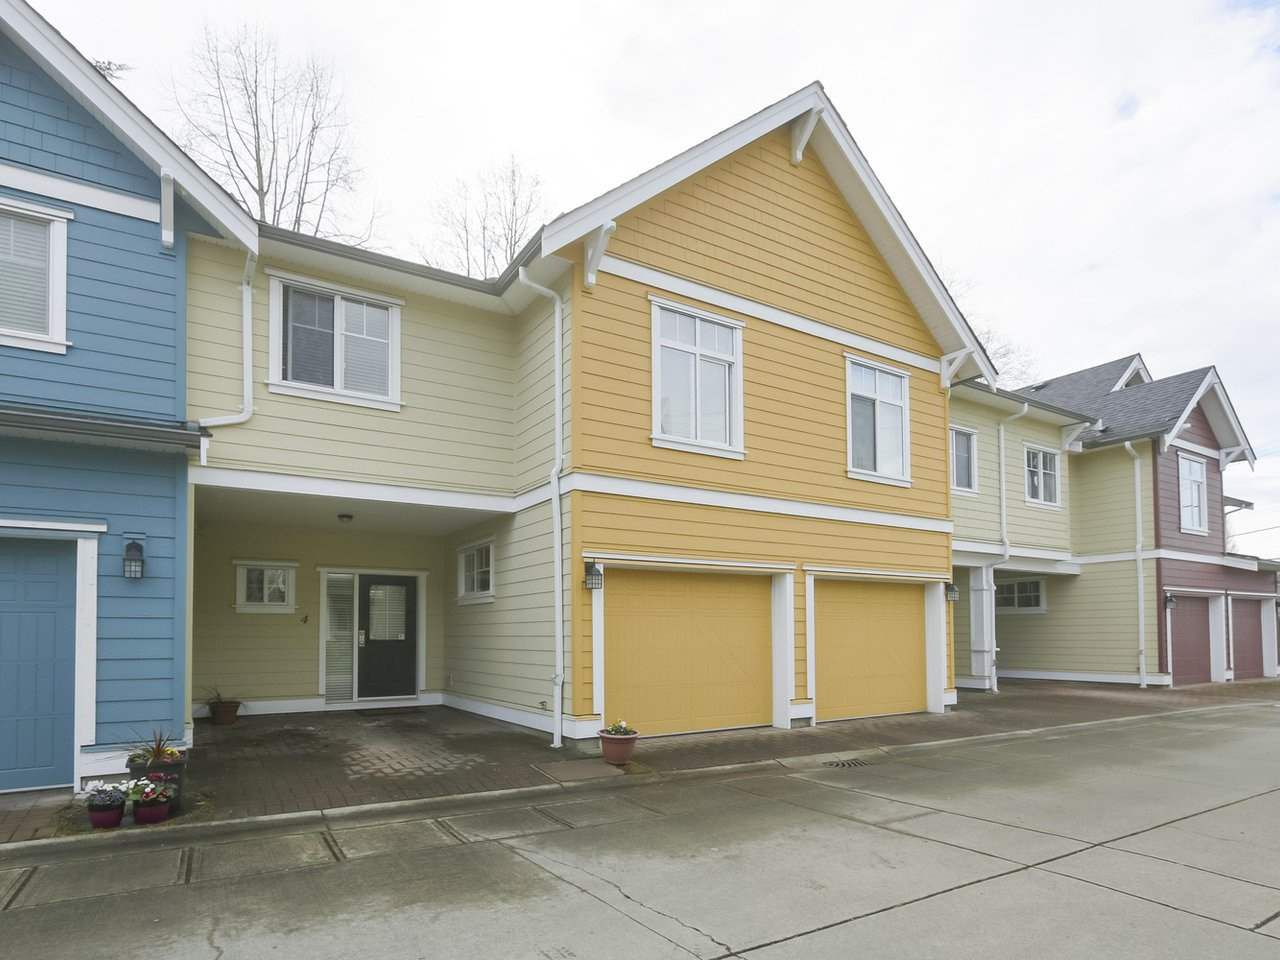 "Main Photo: 4 4910 CENTRAL Avenue in Delta: Hawthorne Townhouse for sale in ""CENTRAL PARK"" (Ladner)  : MLS®# R2355391"